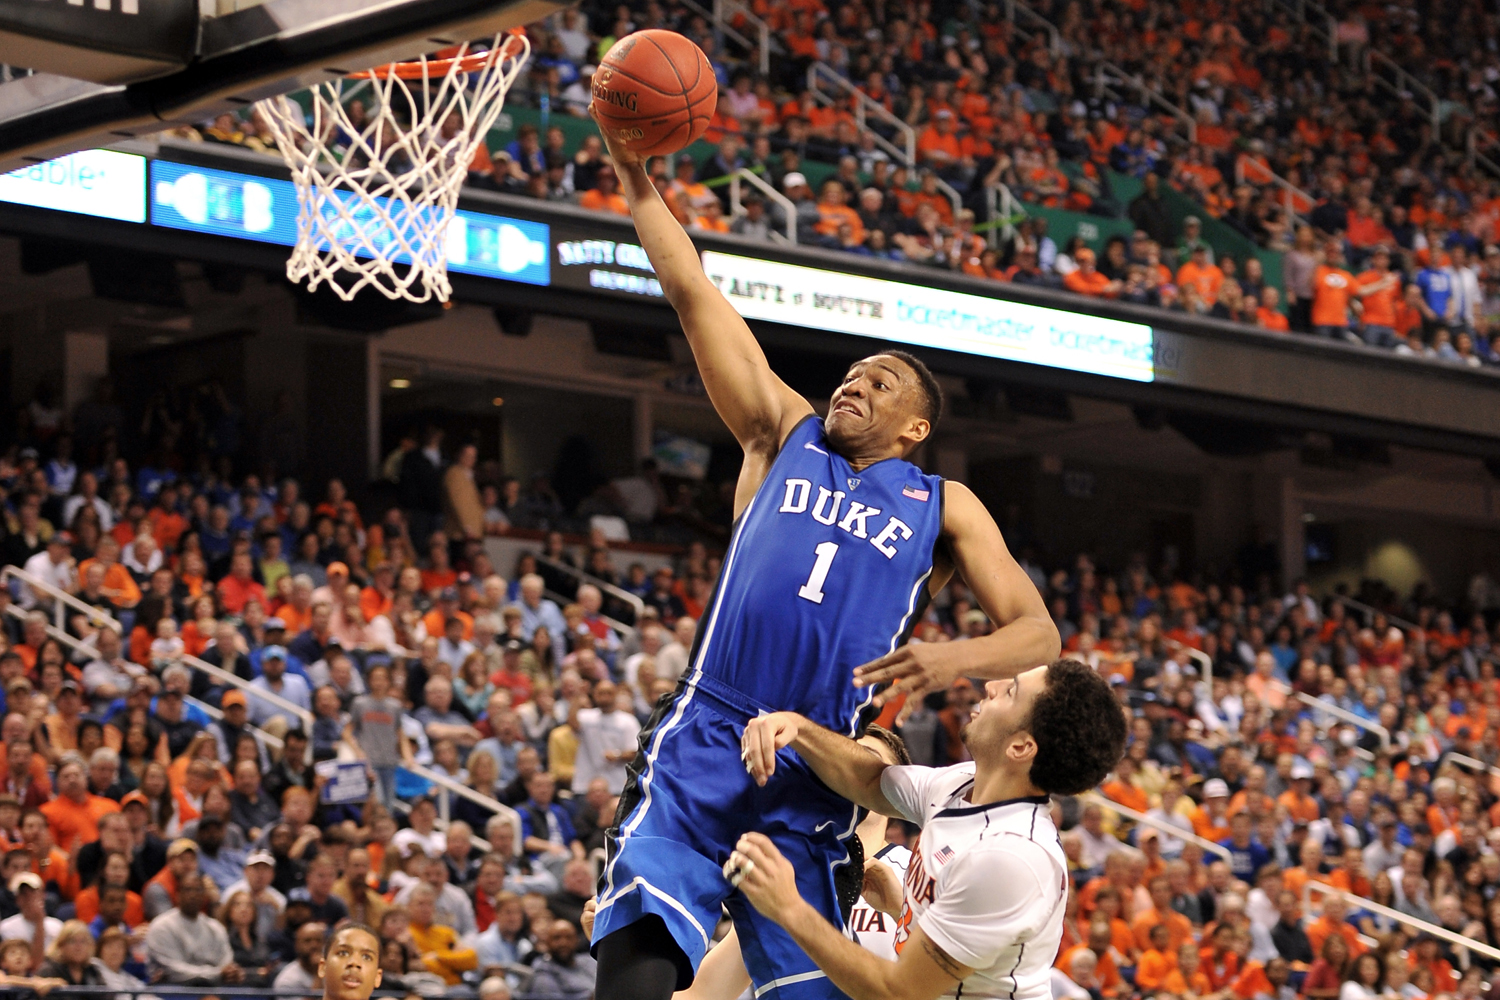 Jabari Parker, #1 of the Duke Blue Devils, goes up for a dunk against the Virginia Cavaliers during the finals of the 2014 Men's ACC Basketball Tournament on March 16, 2014 in Greensboro, North Carolina. Virginia defeated Duke 72-63.